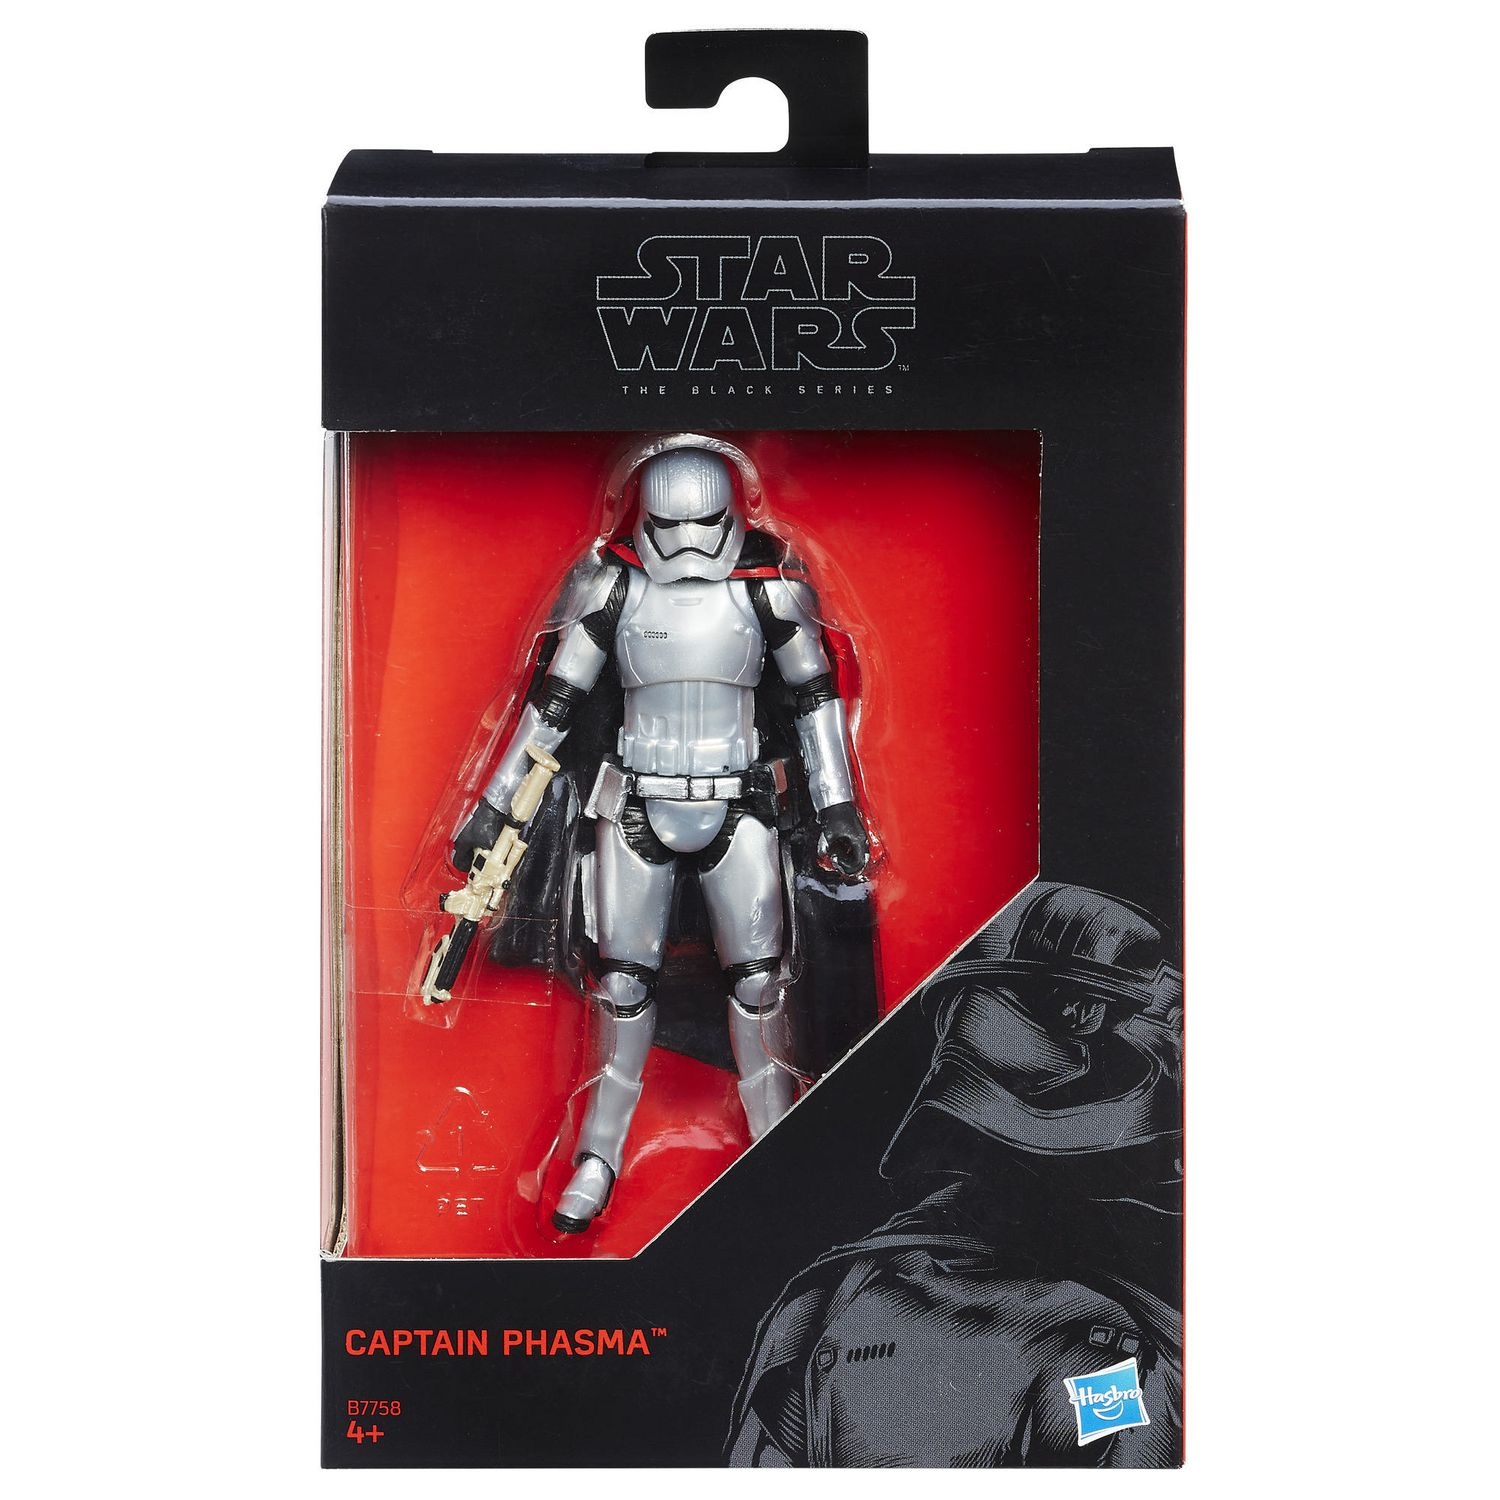 Star Wars The Black Series 3 75 Inch Captain Phasma Action